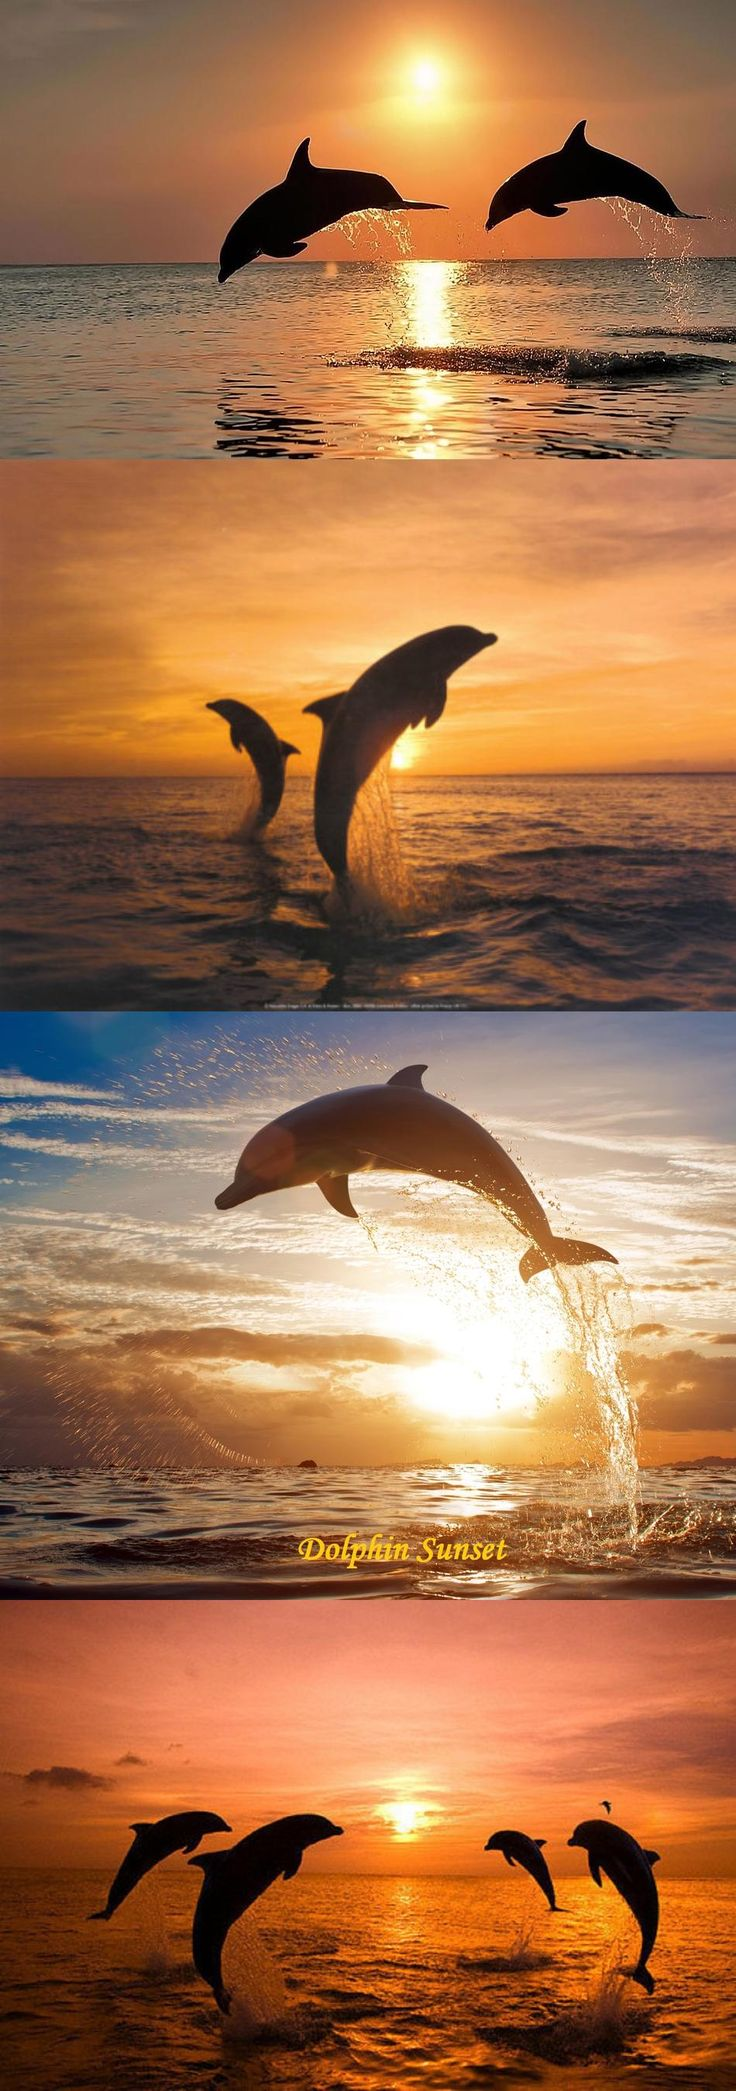 dolphins at a sunset  I love the sunset  I love dolphins you can't go wrong...